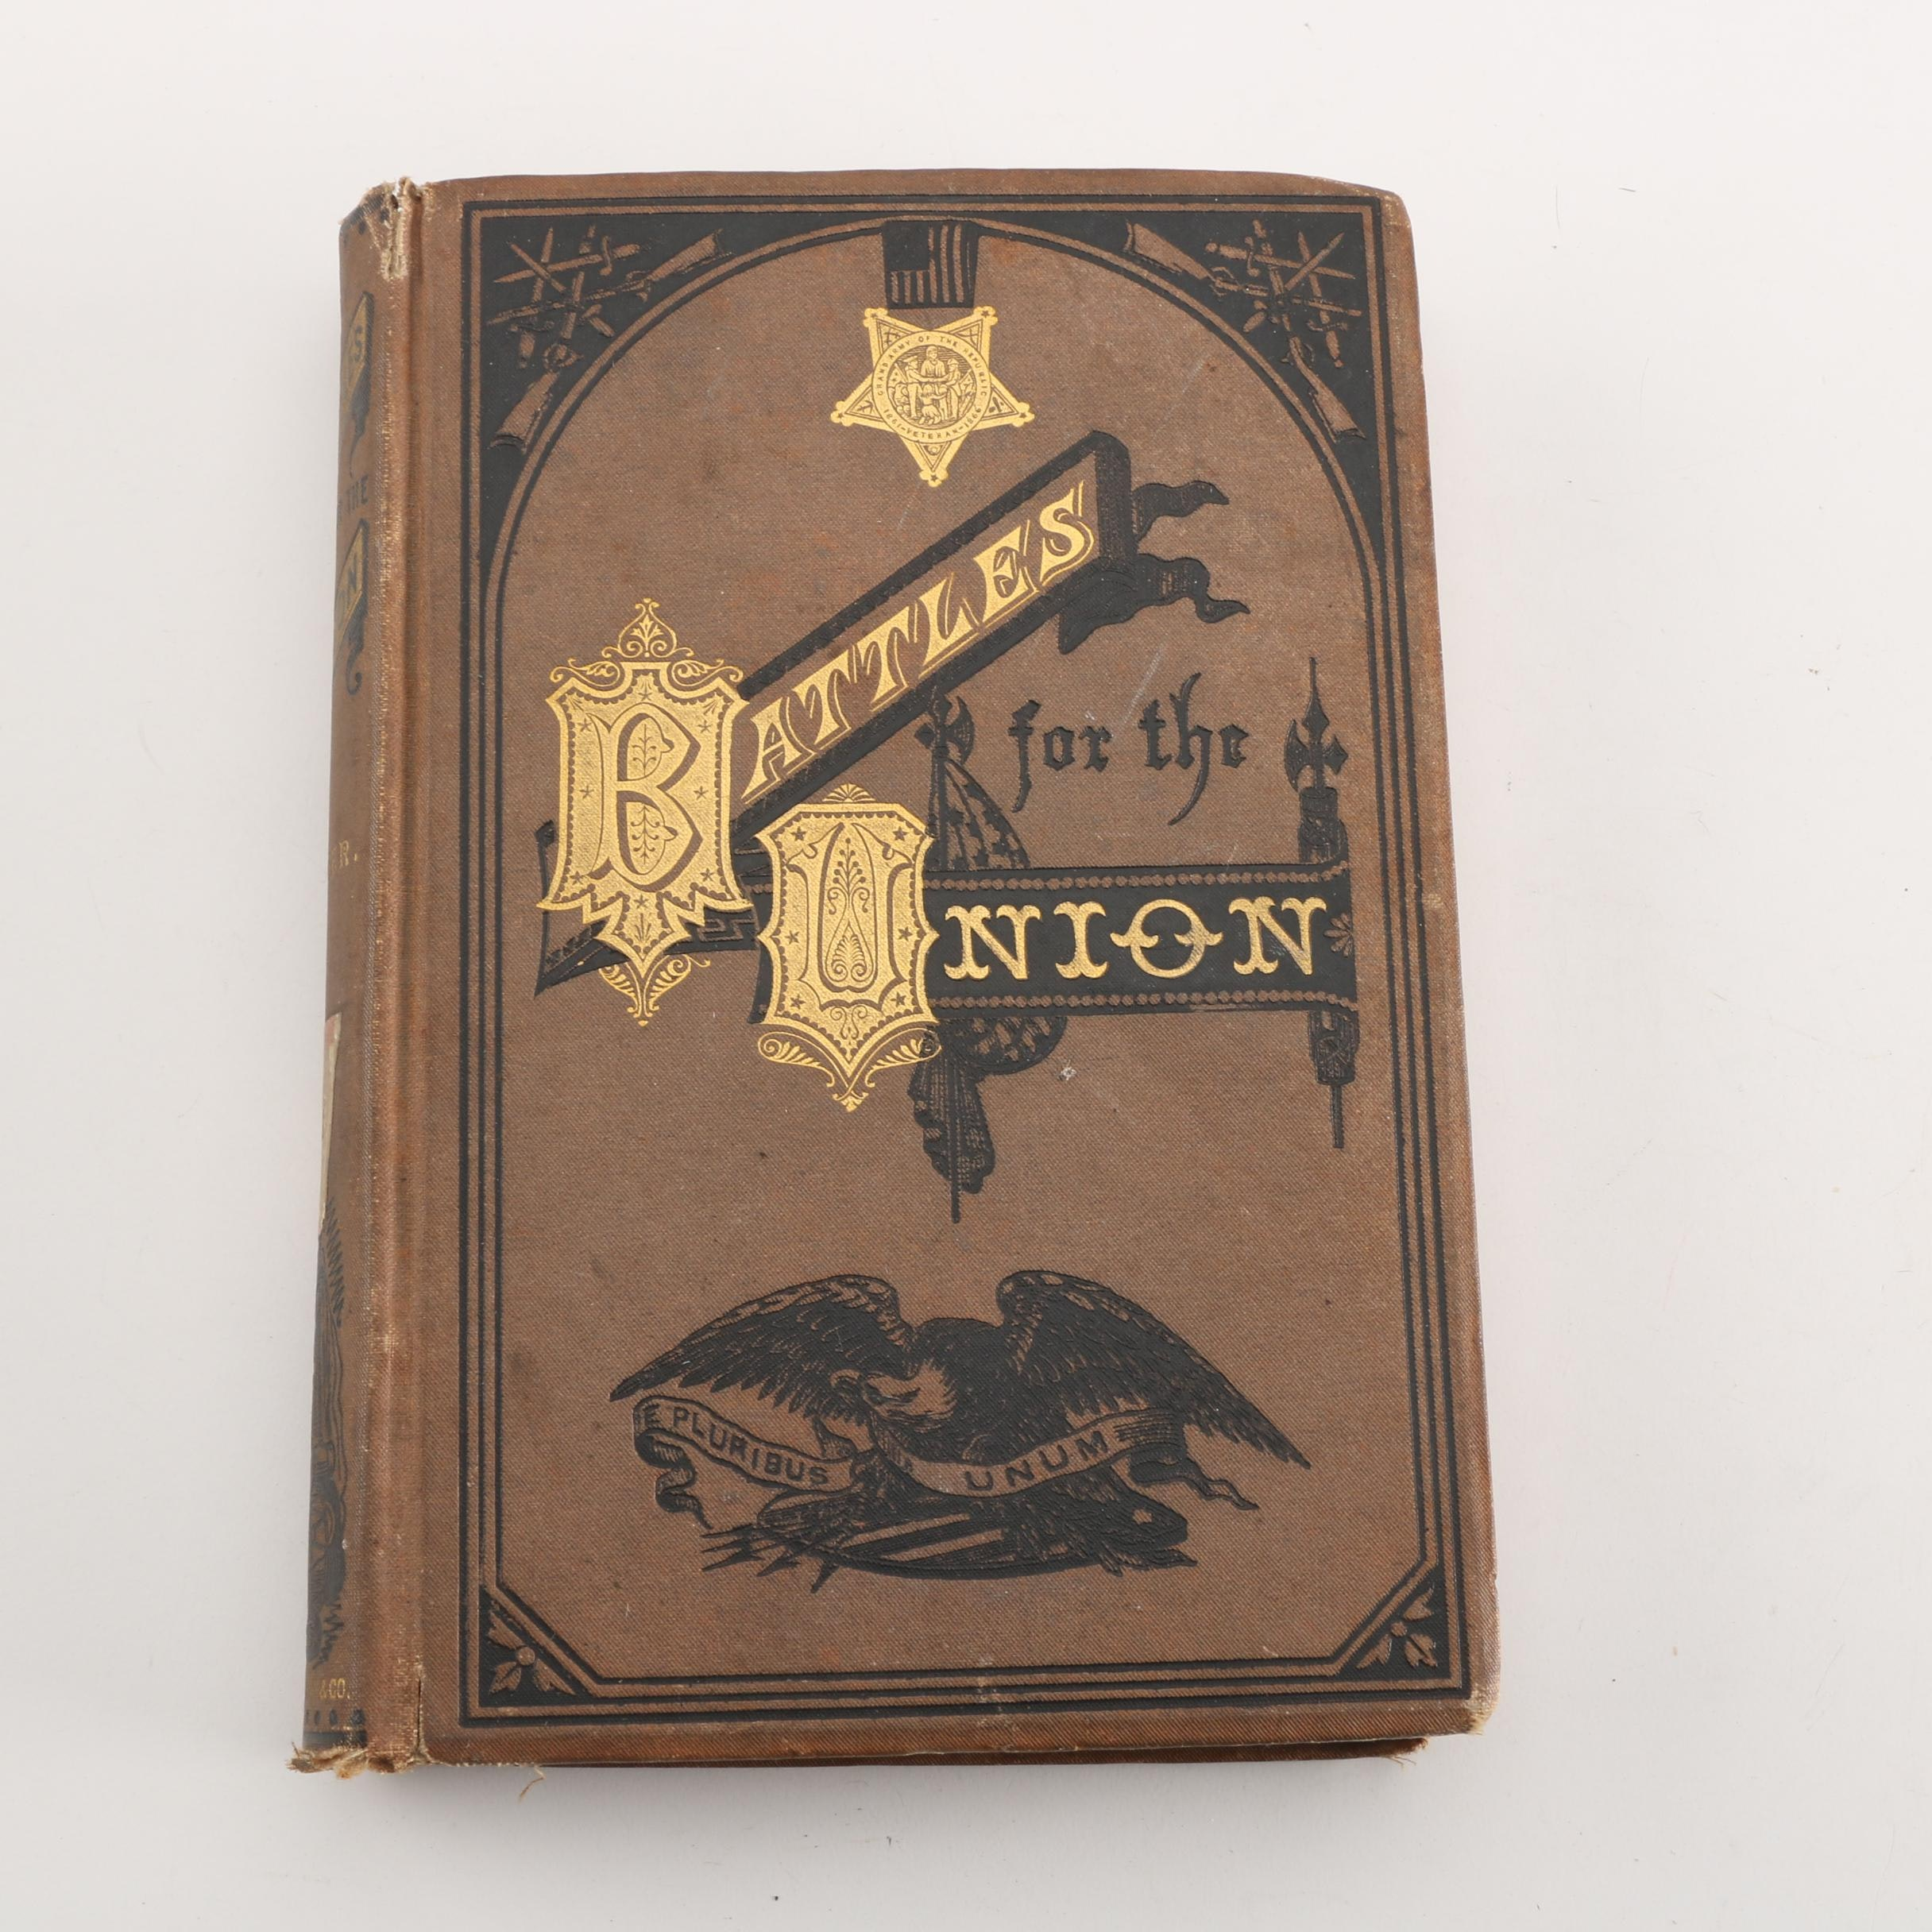 "1878 ""Battles for the Union"" by Captain Willard Glazier"